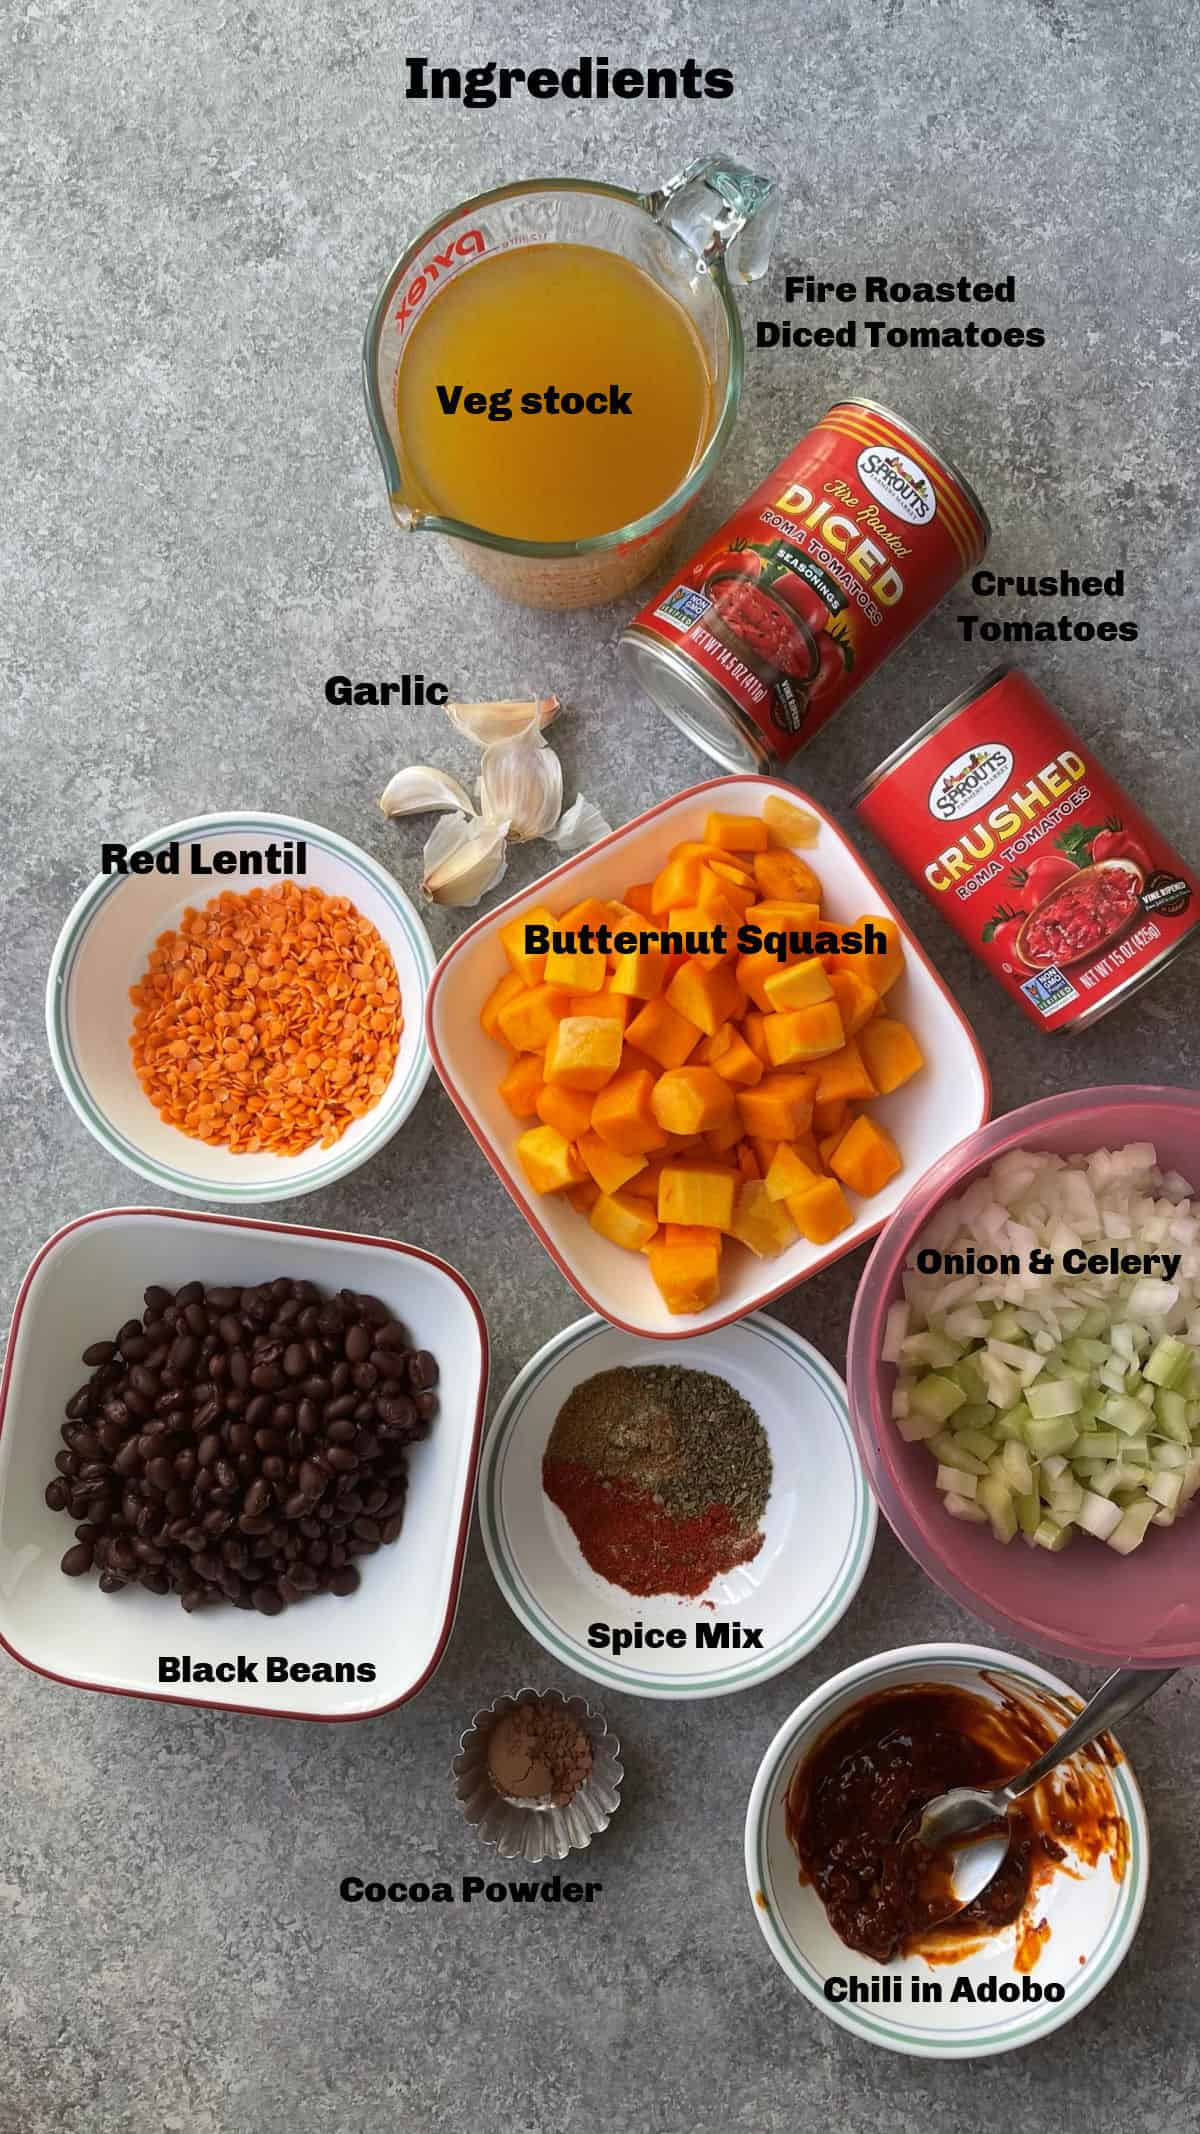 Ingredients to make the chili in instant pot